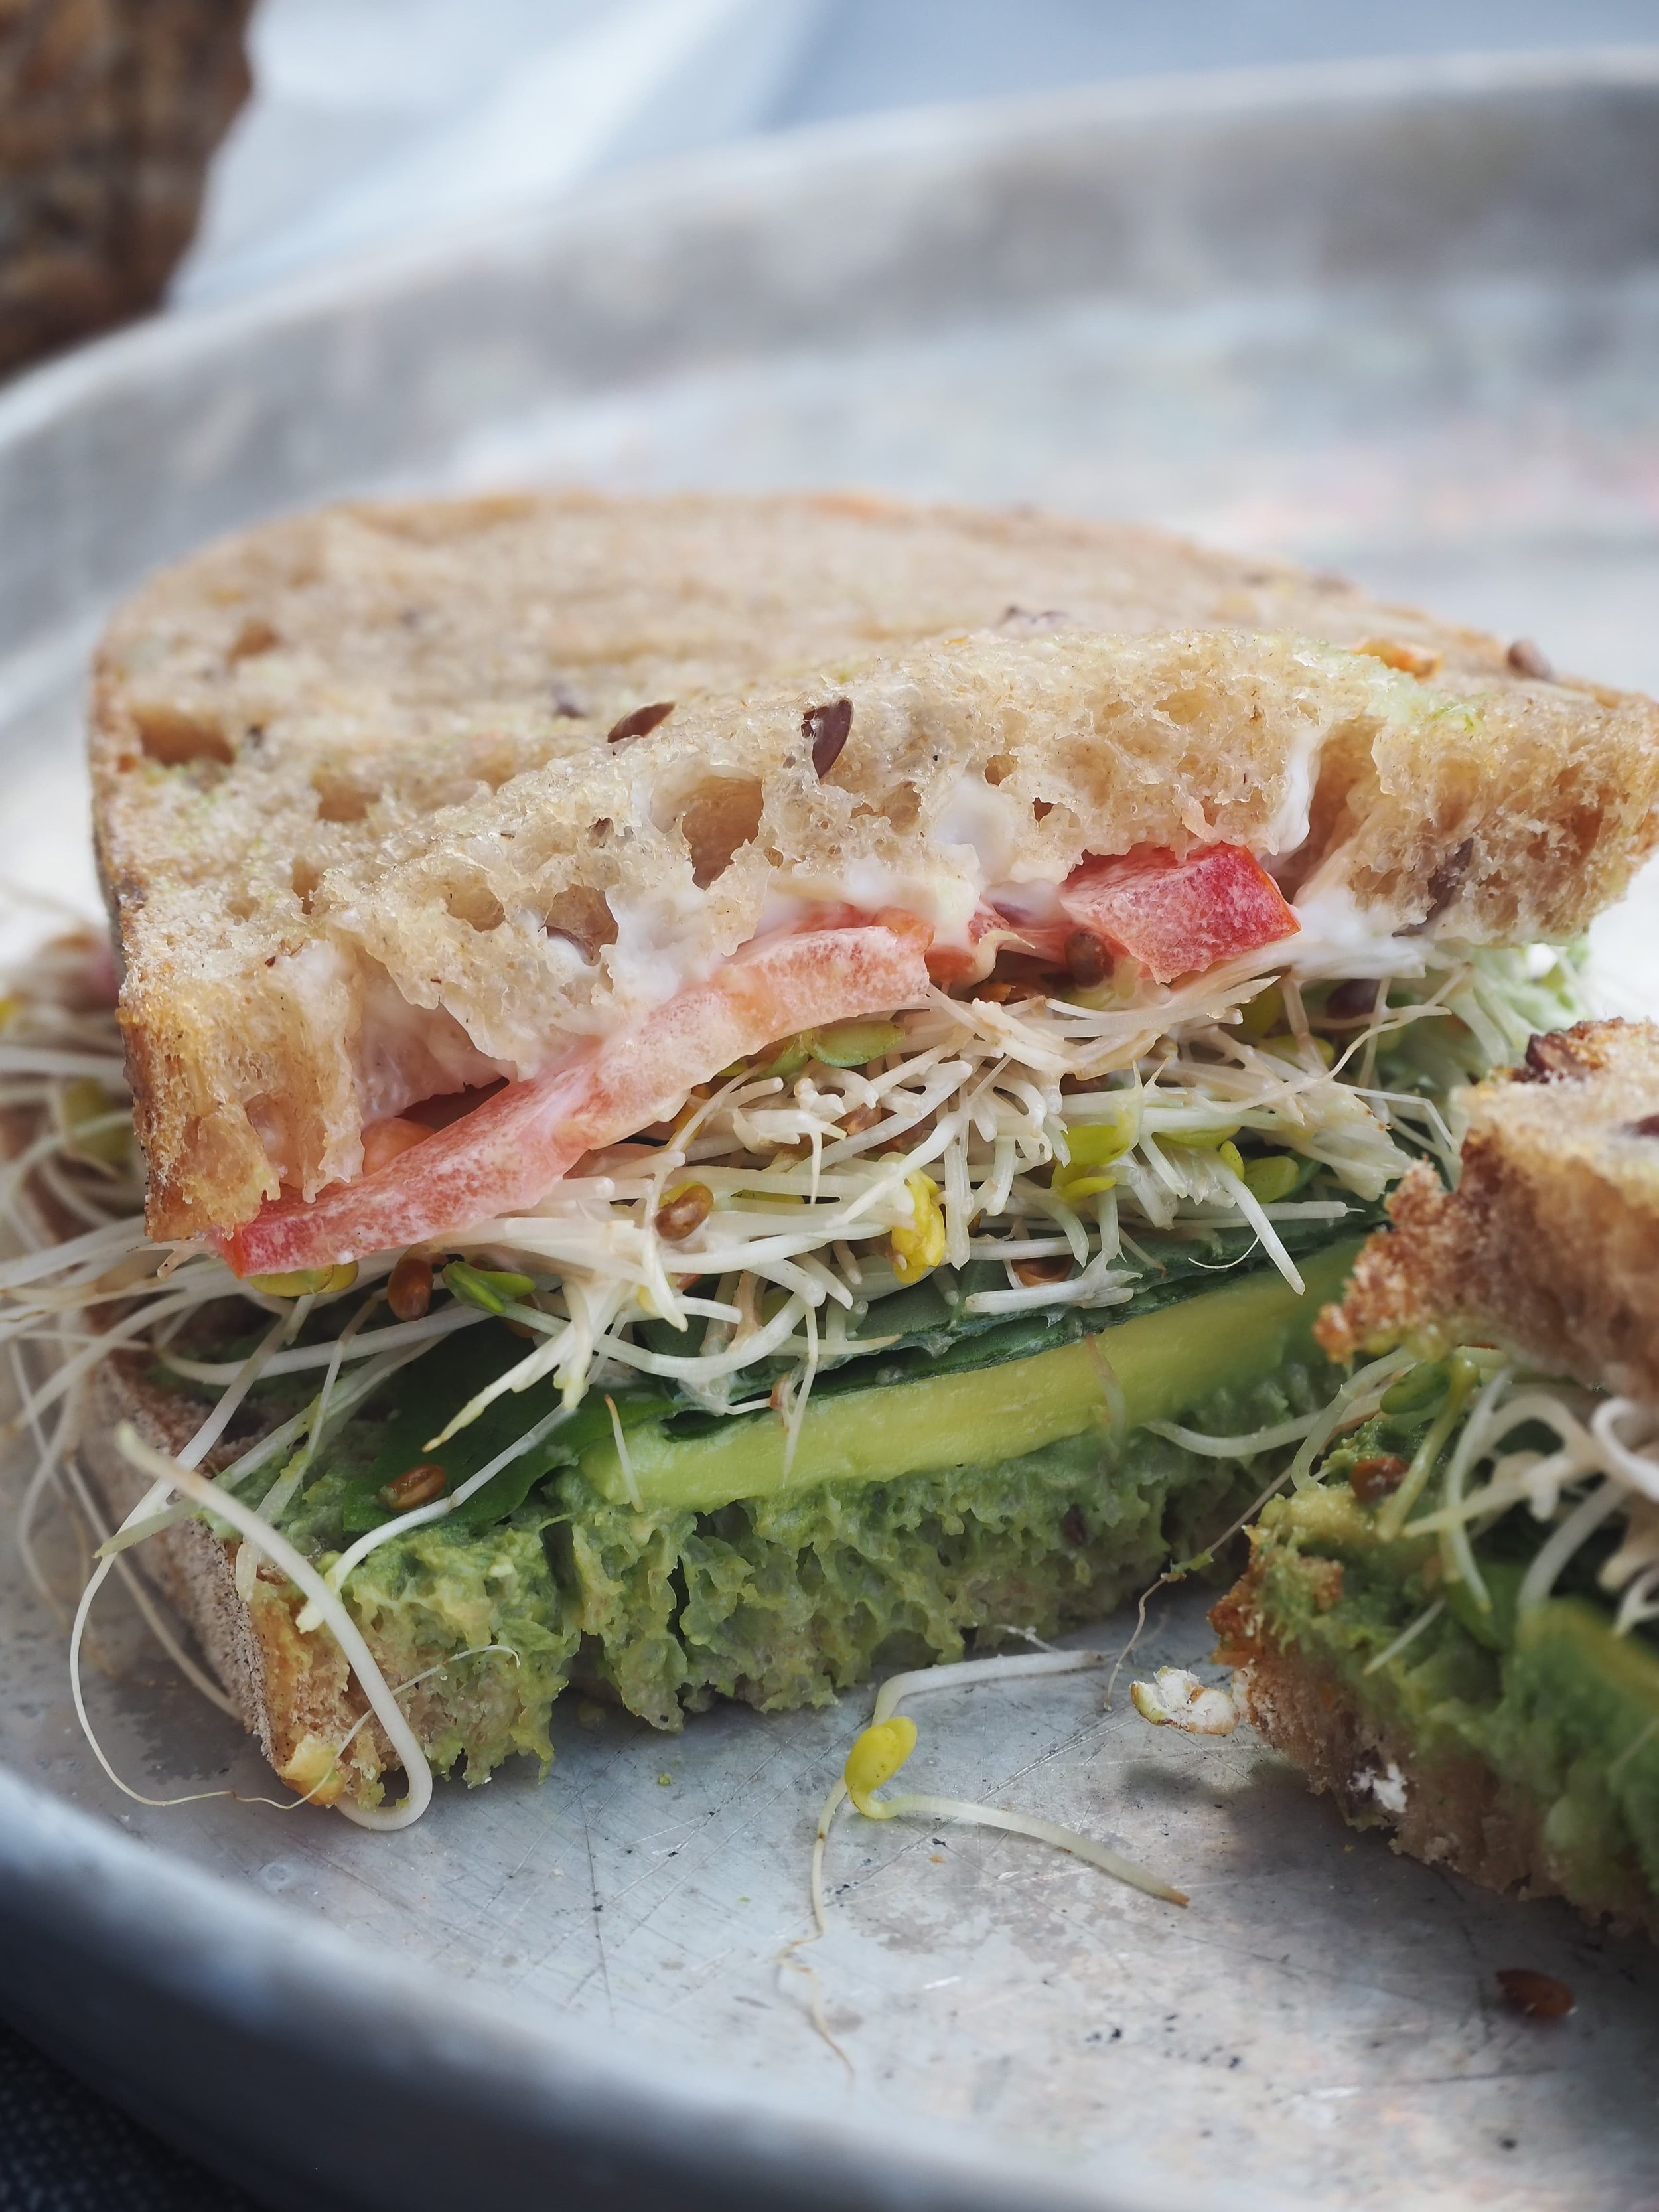 Vegan Avocado Pesto Sandwich